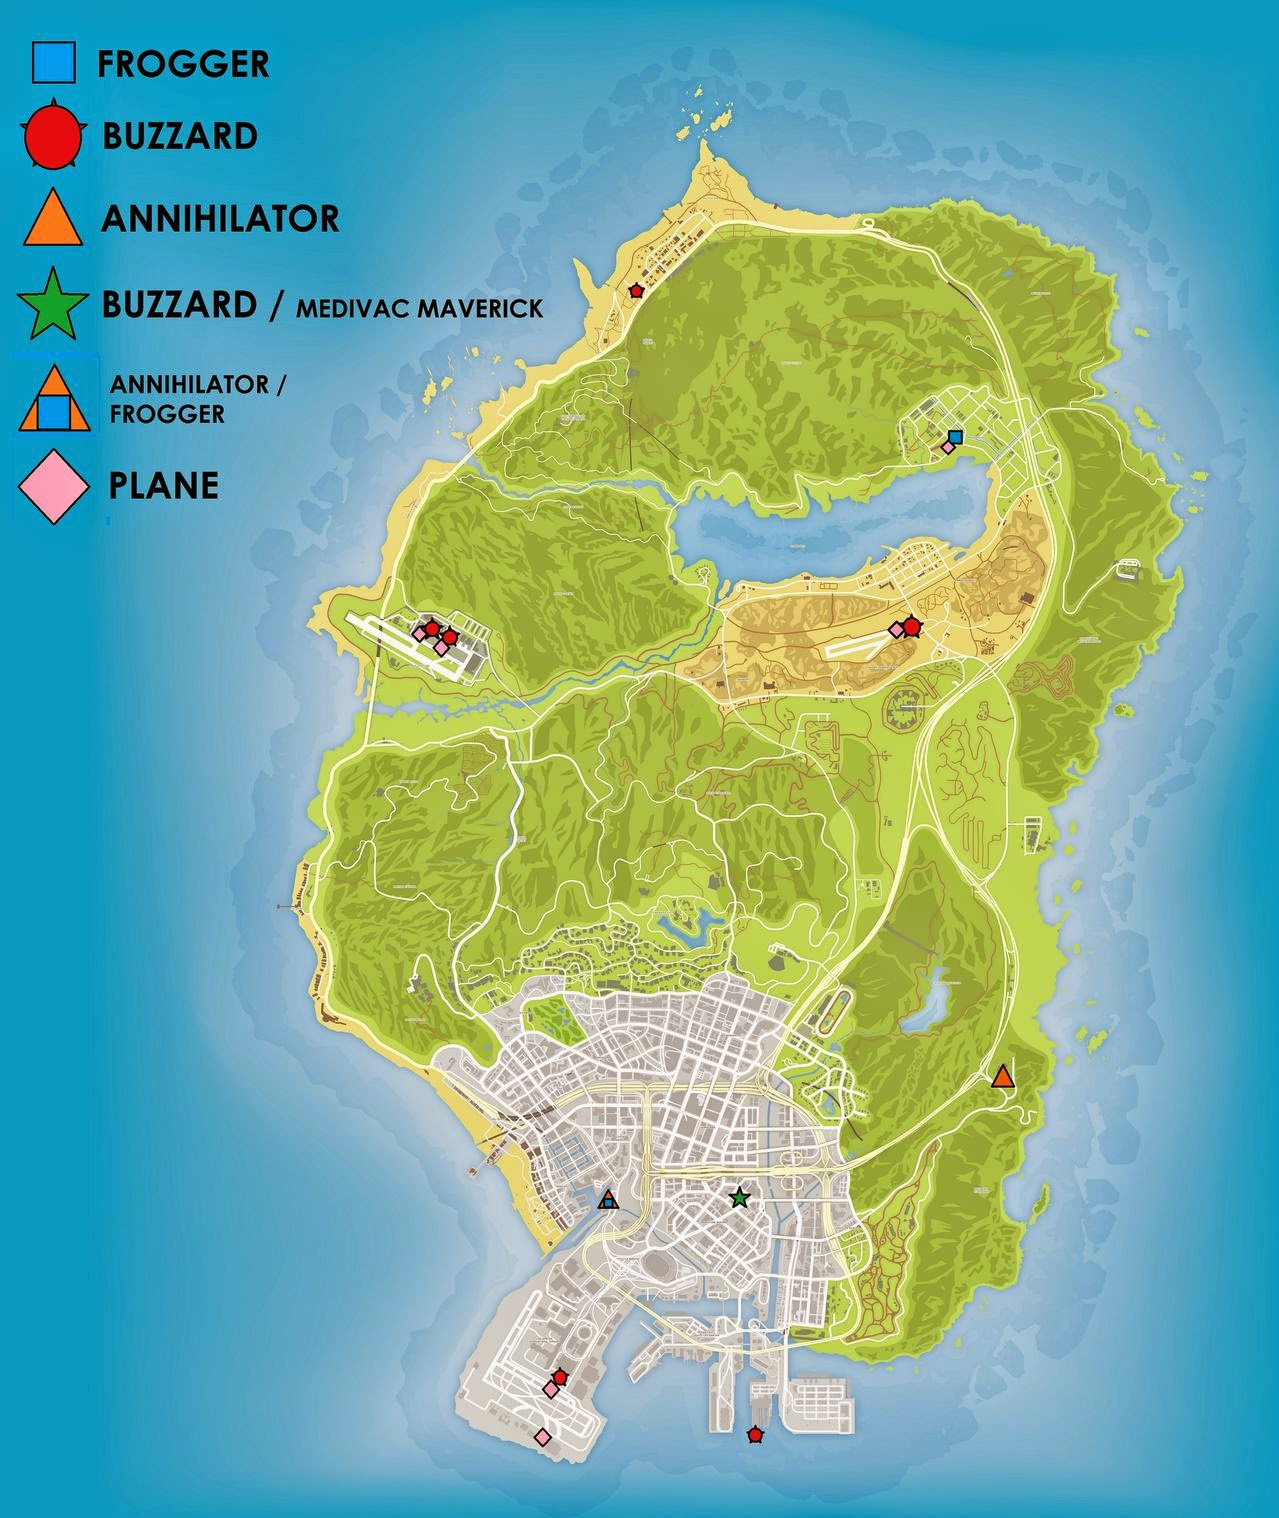 Gta 5 Online Cheats All Helicopter And Plane Locations